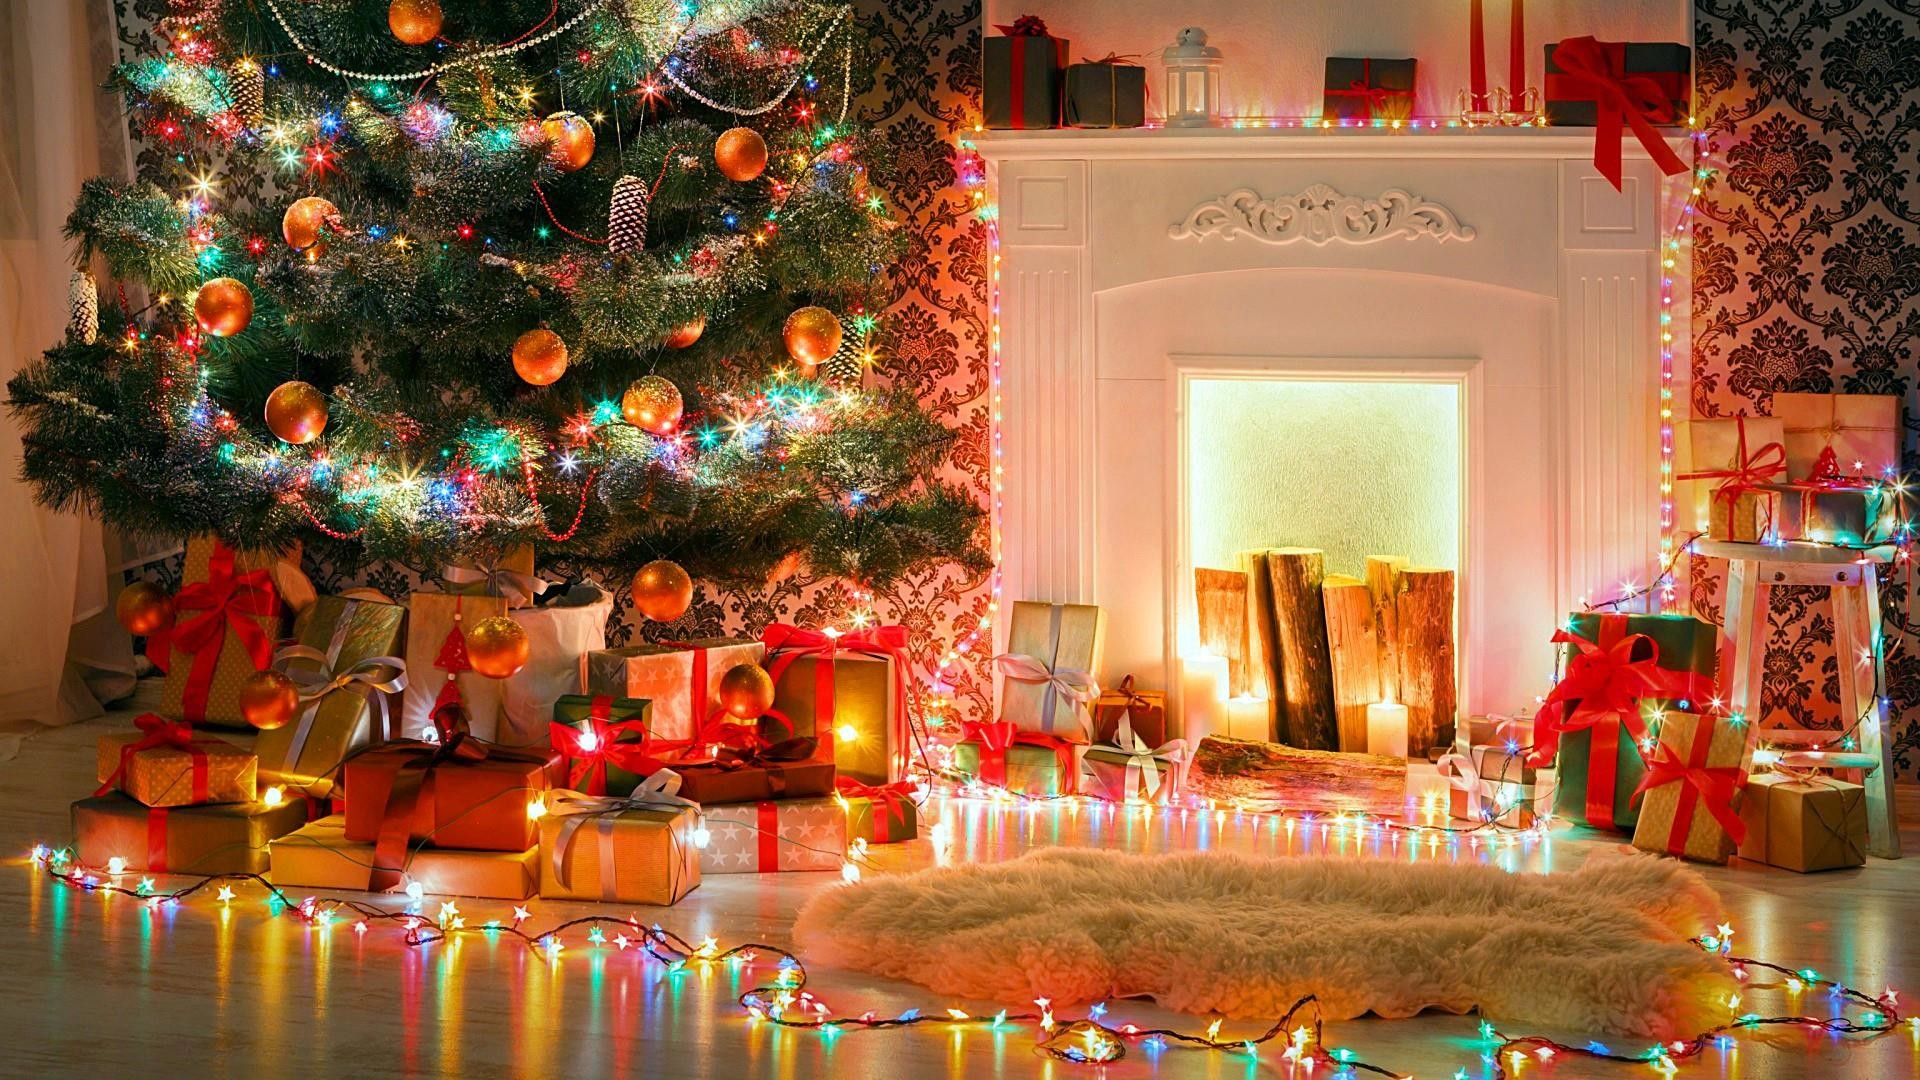 Christmas Fireplace Wallpaper (57+ images)